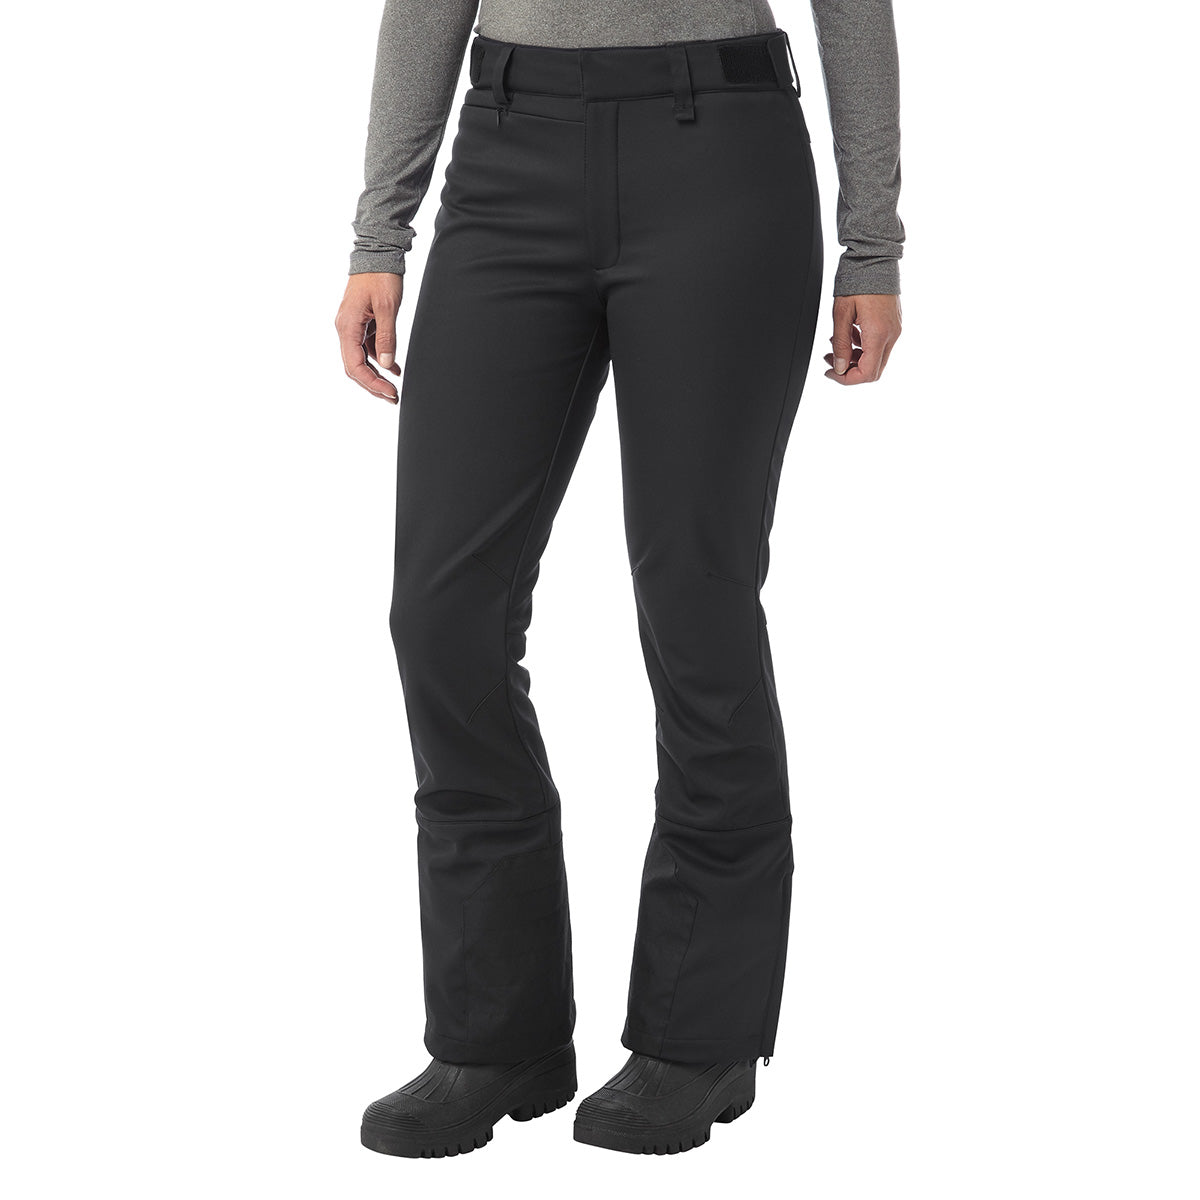 Aubree Womens Fitted Softshell Ski Pants Short - Black